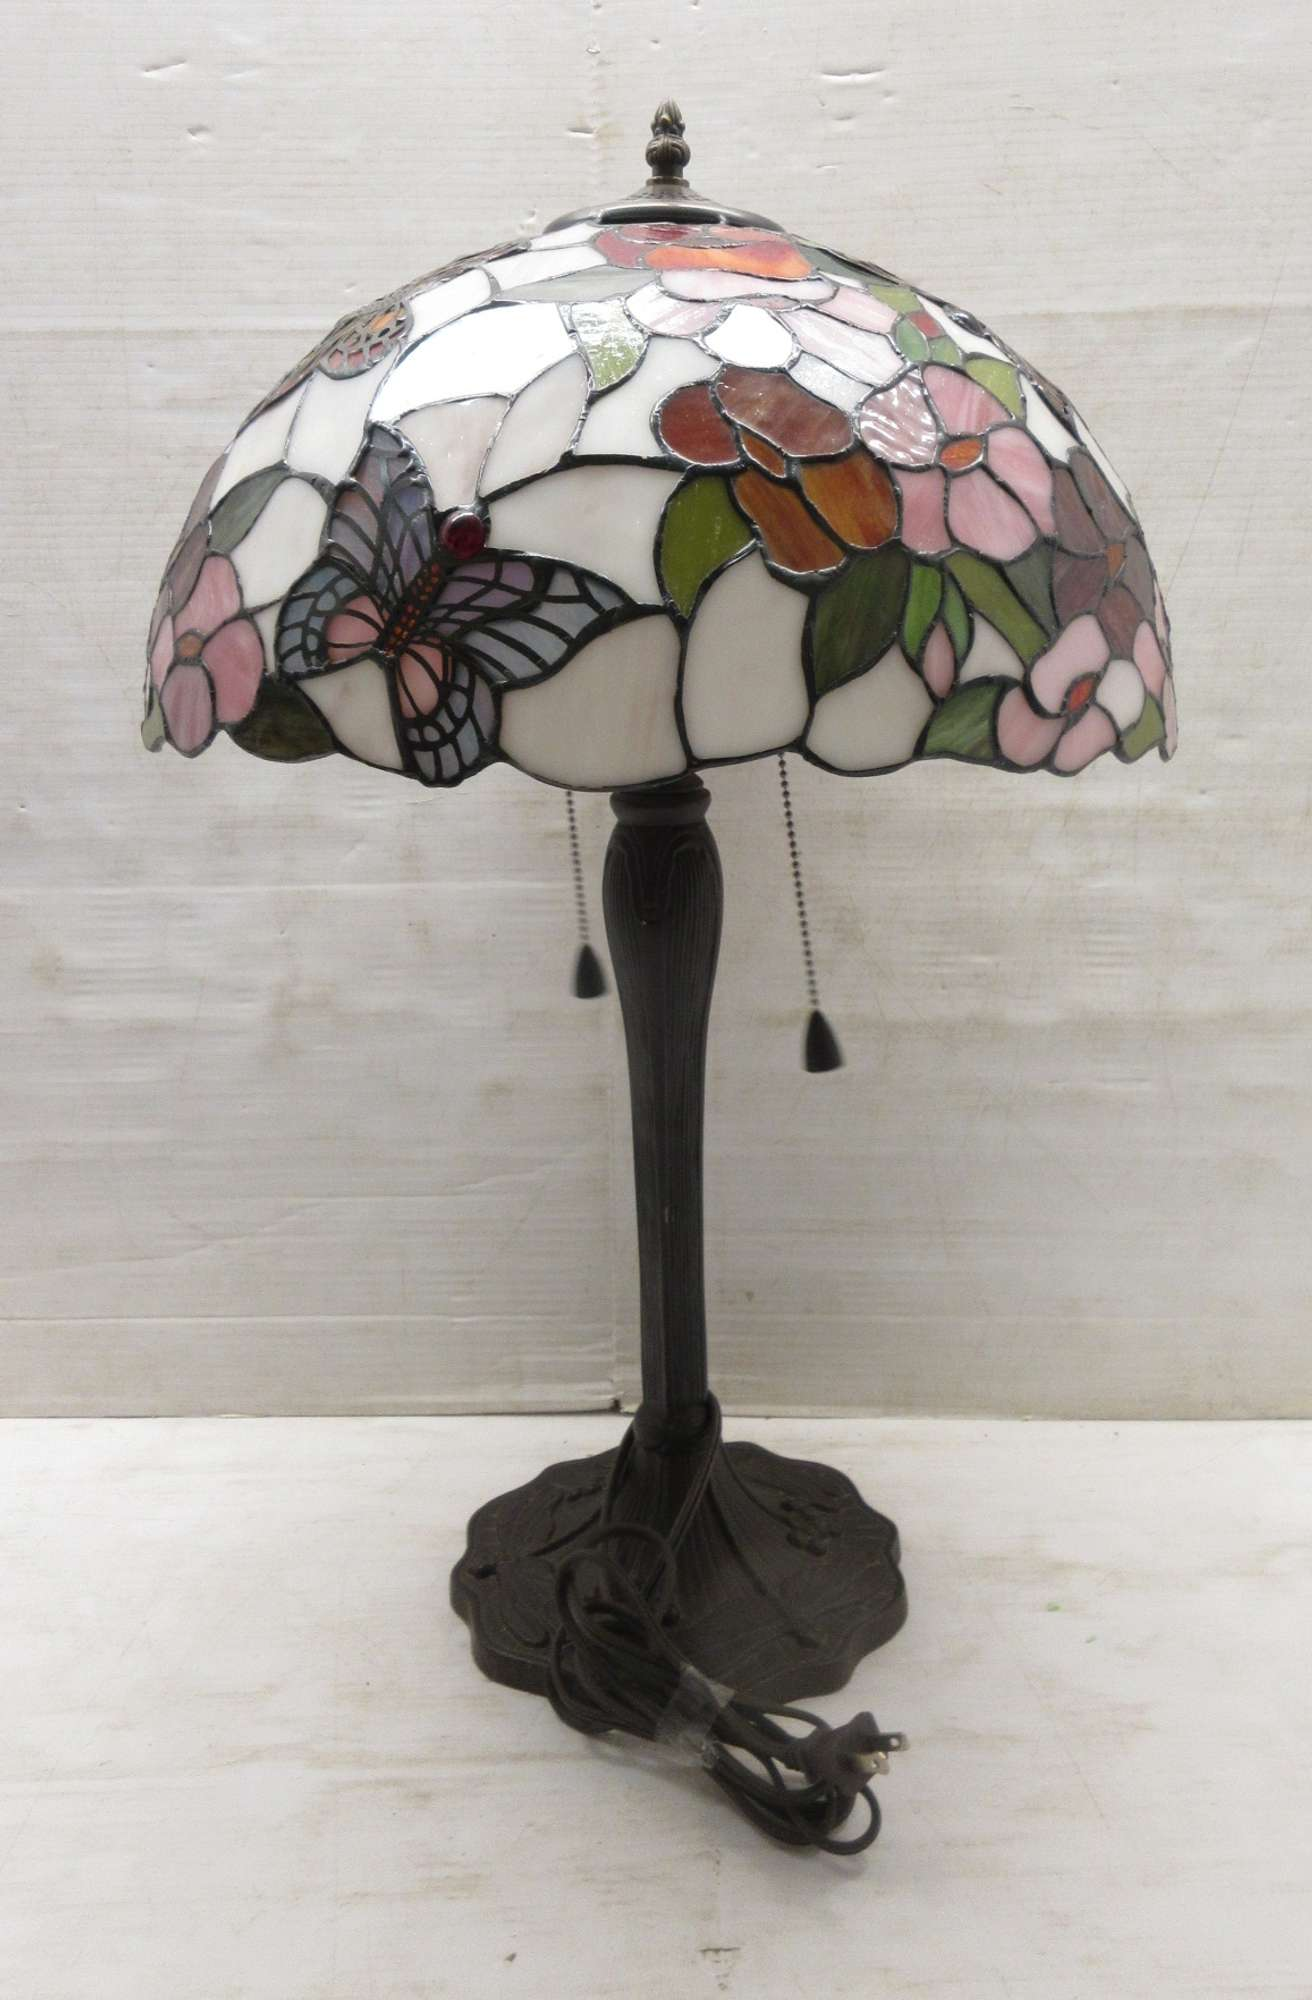 Albrecht Auctions Large Dale Tiffany Signed Stained Glass Butterfly Lamp Shade Sets On Bronze Base Double Bulb Gooseneck Base Double Pull Chain On Off Lamp Base May Not Be Original To Tiffany